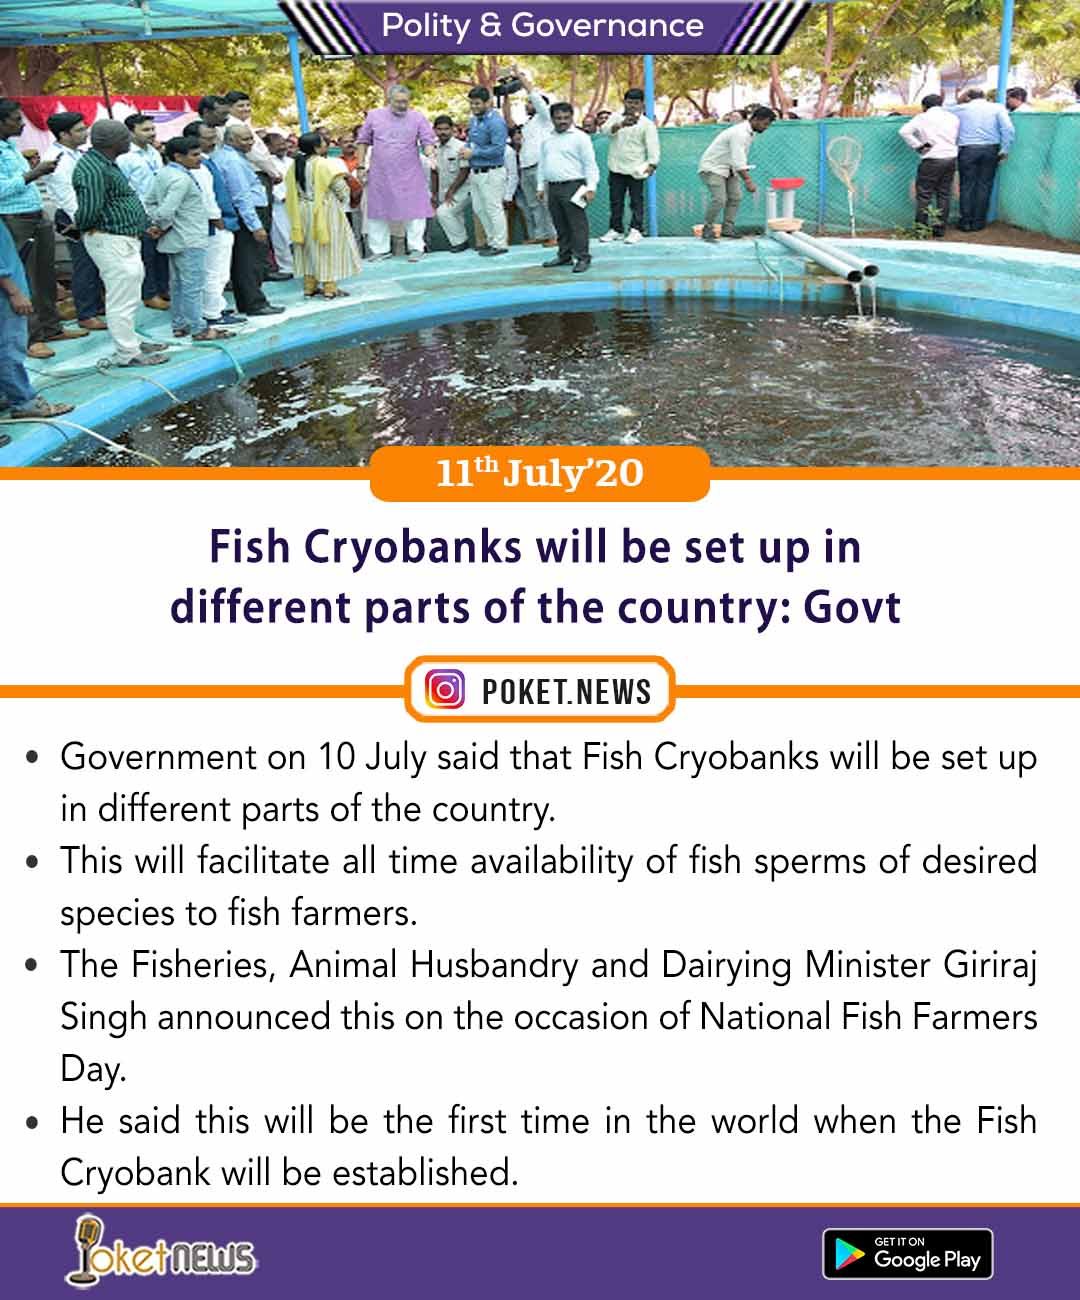 Fish Cryobanks will be set up in different parts of the country: Govt